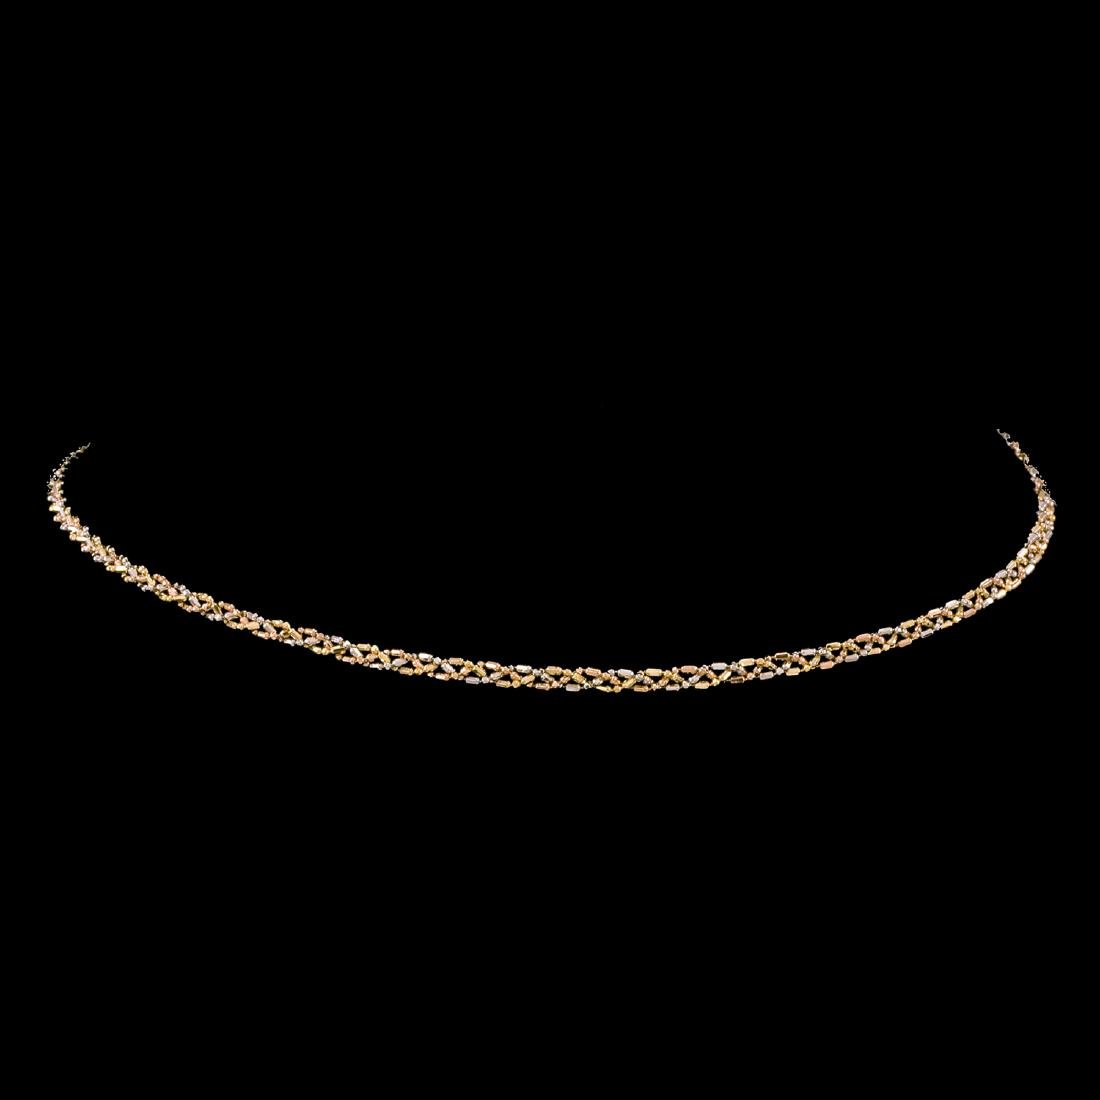 *Fine Jewelry 14 KT White and Yellow Rose Gold Braided